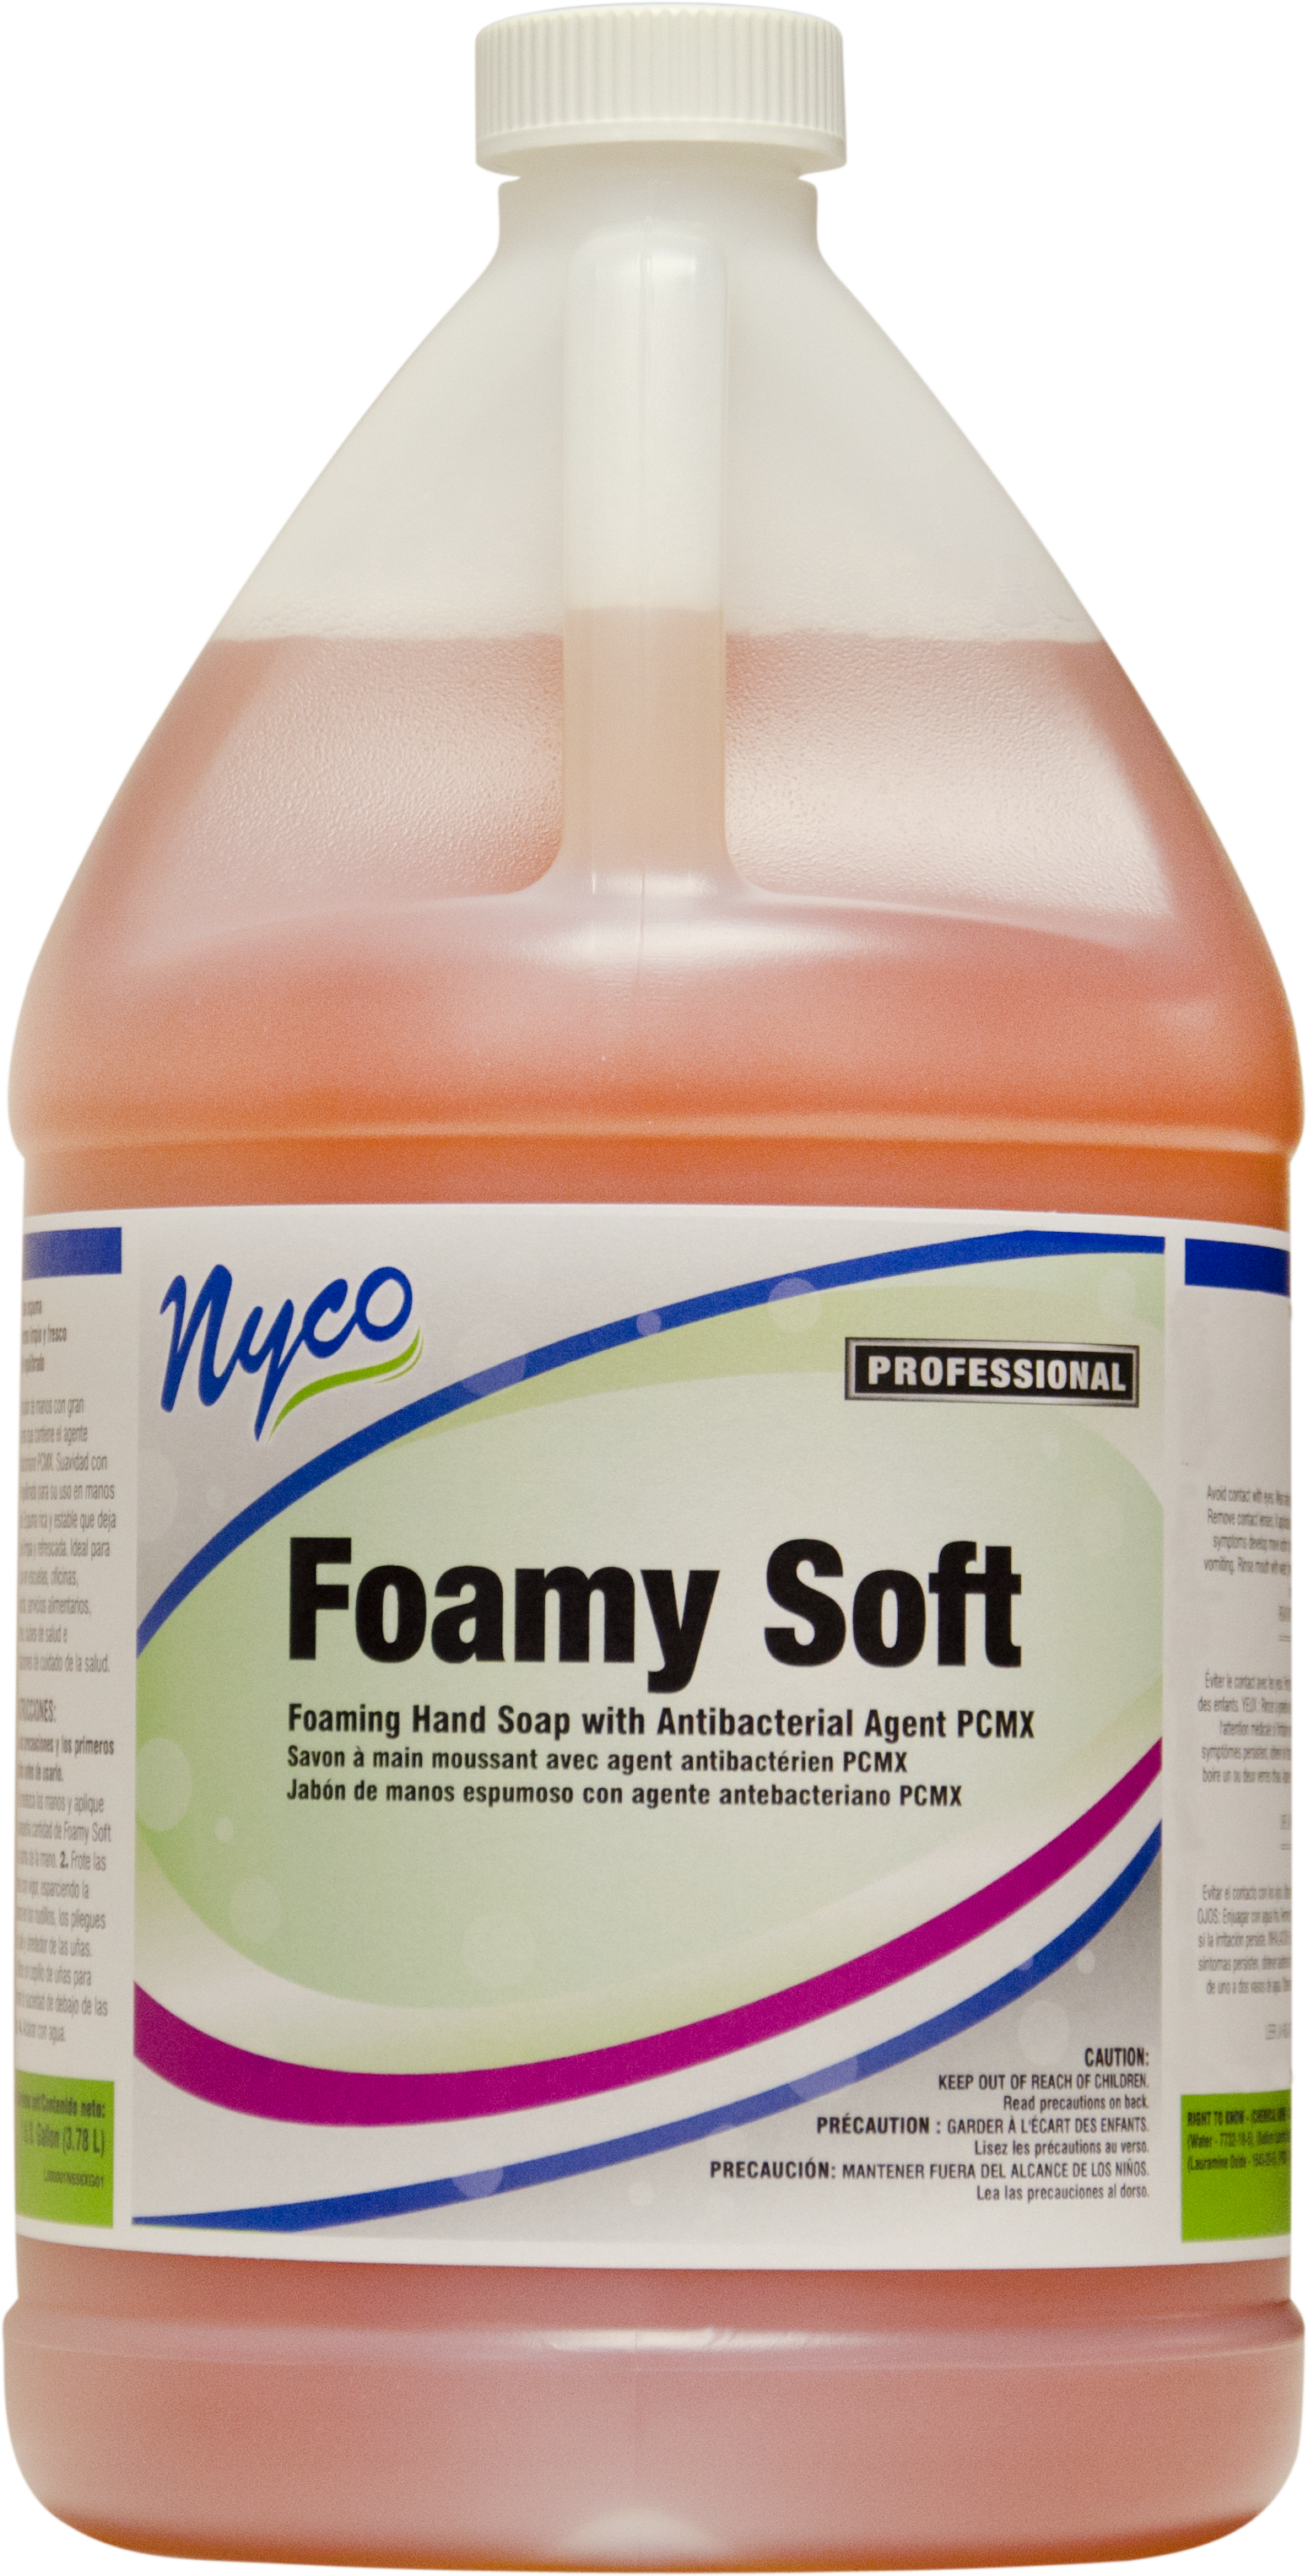 Nyco NL556-G4 foamy soft foaming hand soap with antibacterial agent pcmx